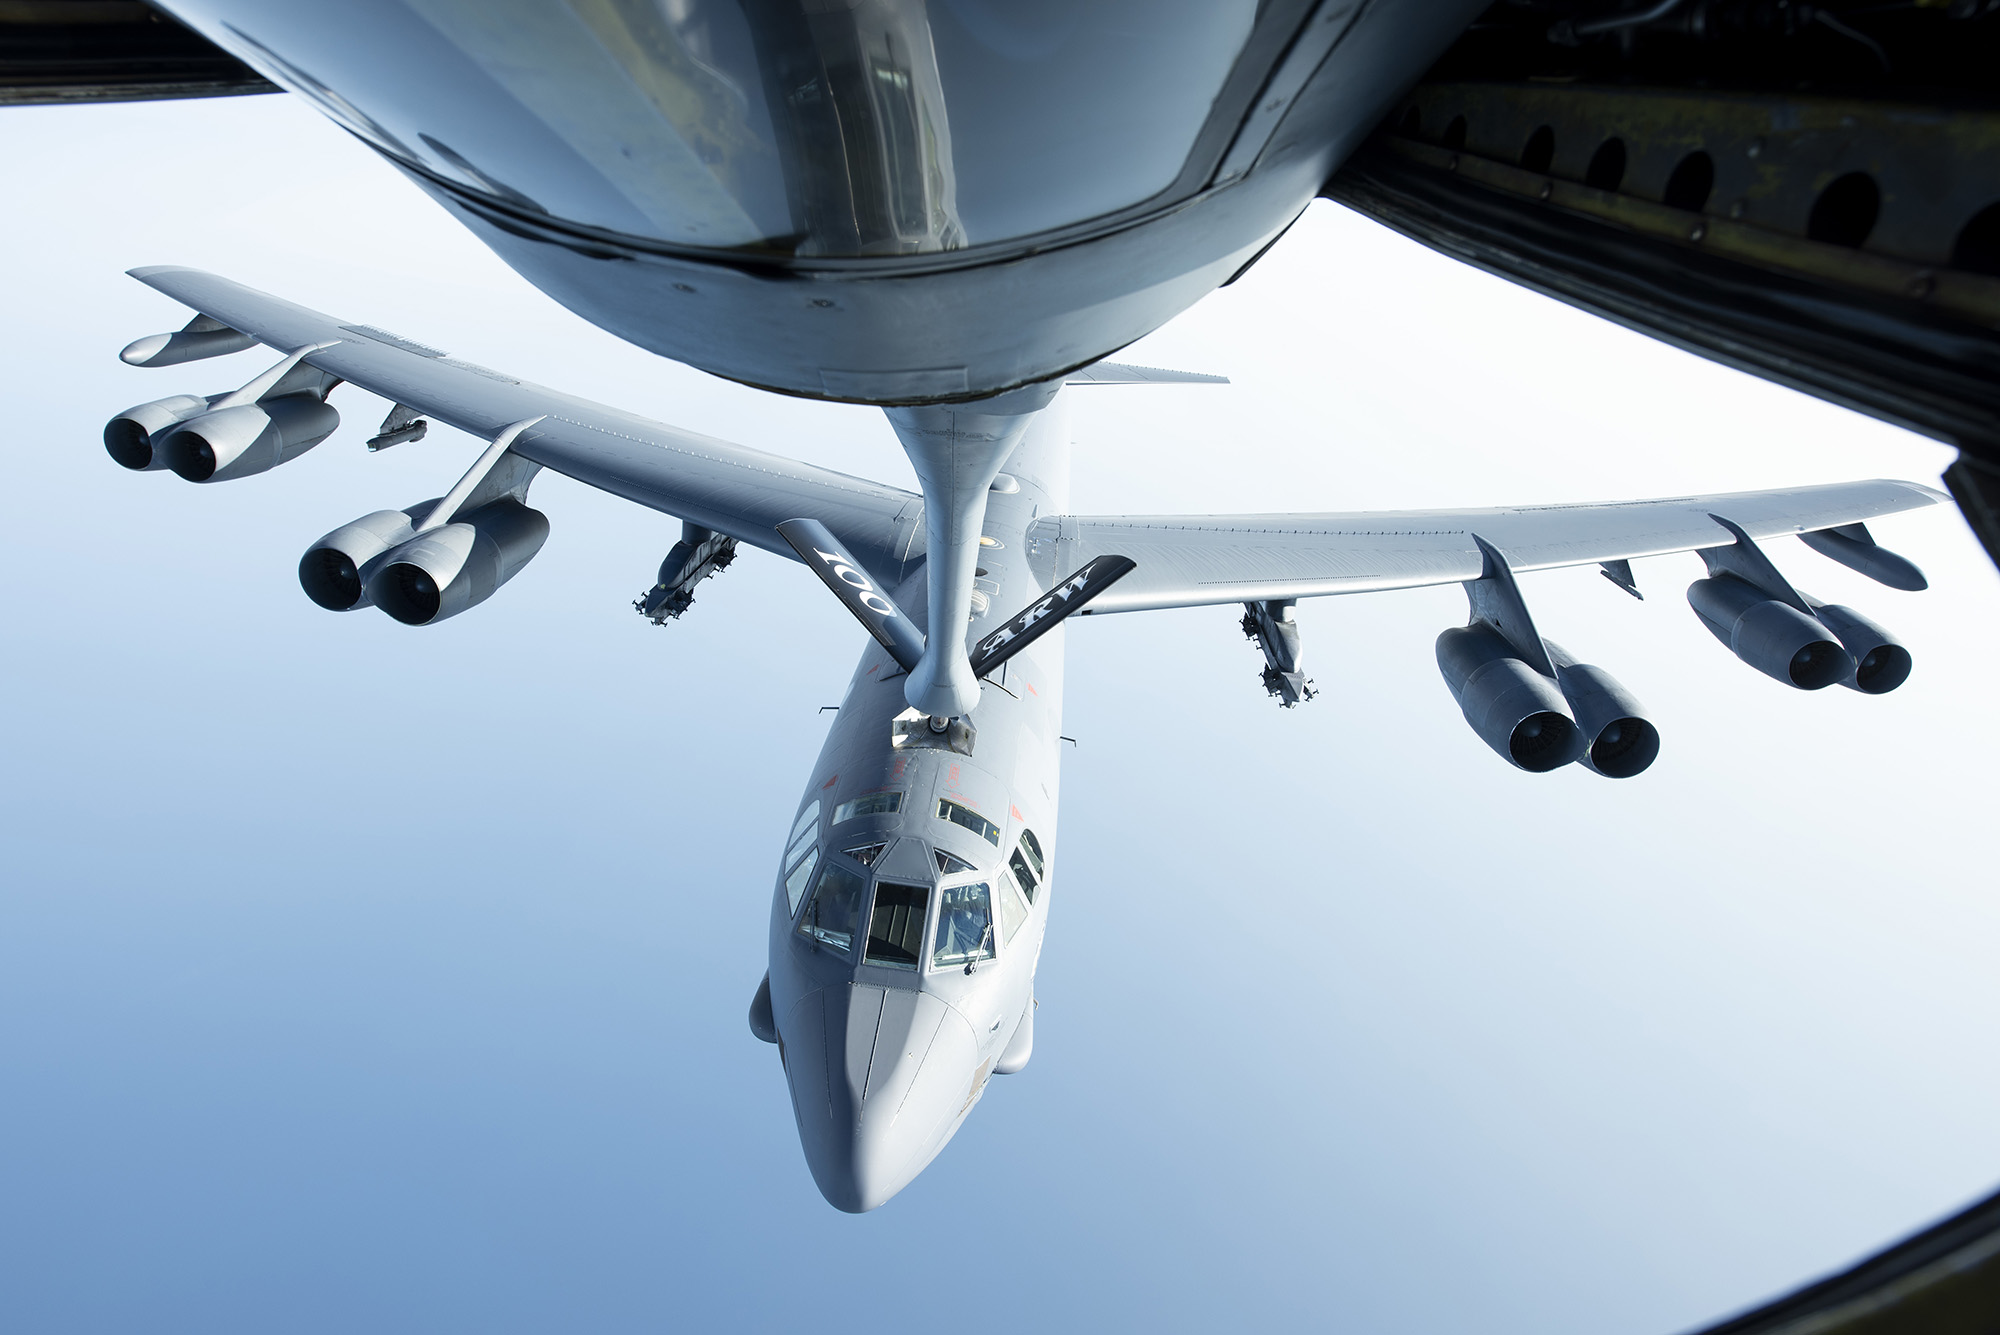 A U.S. Air Force B-52H Stratofortress flies below a KC-135 Stratotanker after receiving fuel above the Mediterranean Sea in support of a Bomber Task Force Europe mission, Sept. 16, 2020. (Senior Airman Jennifer Zima/Air Force)